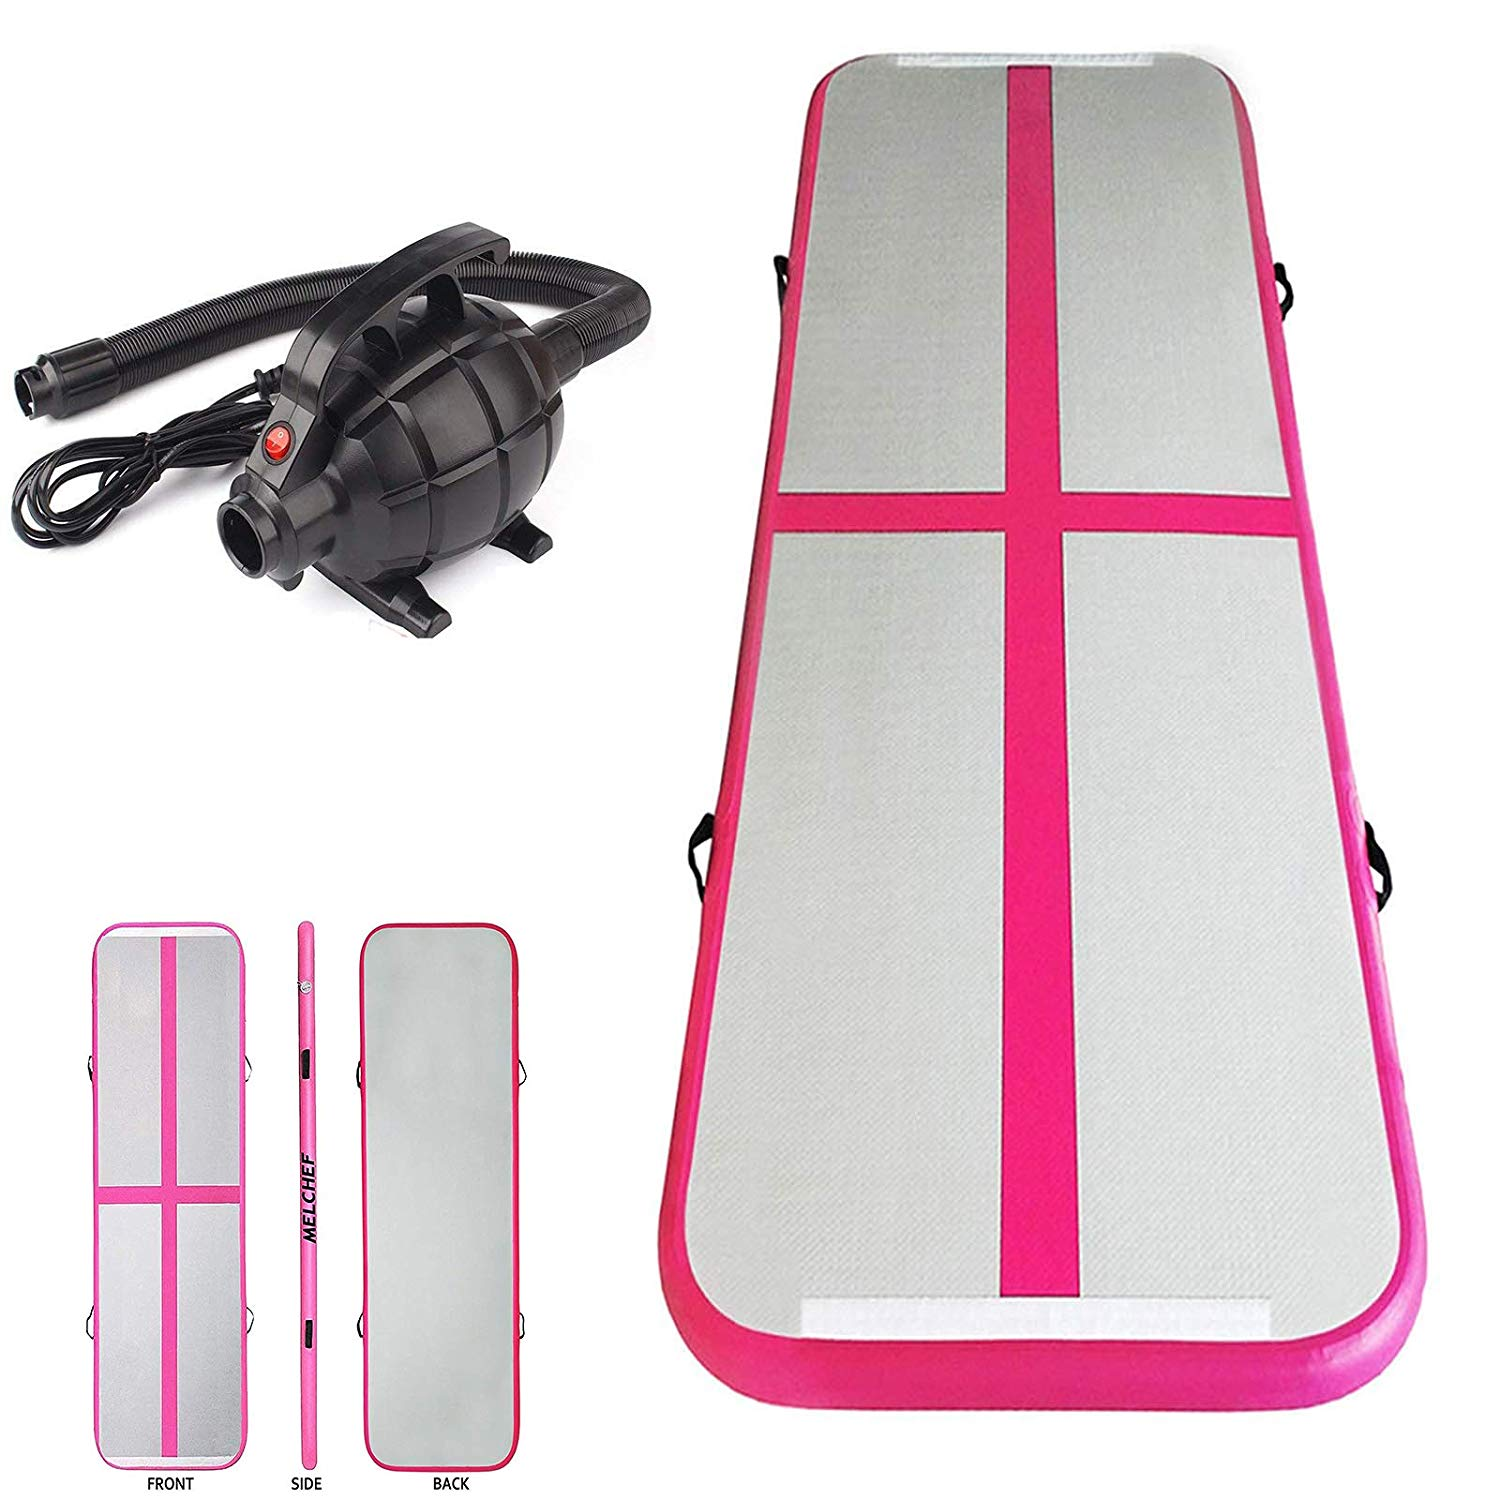 Inflatable Air Track Mat Tumbling Floor Home Gymnastics Mat with Electric Pump - Pink